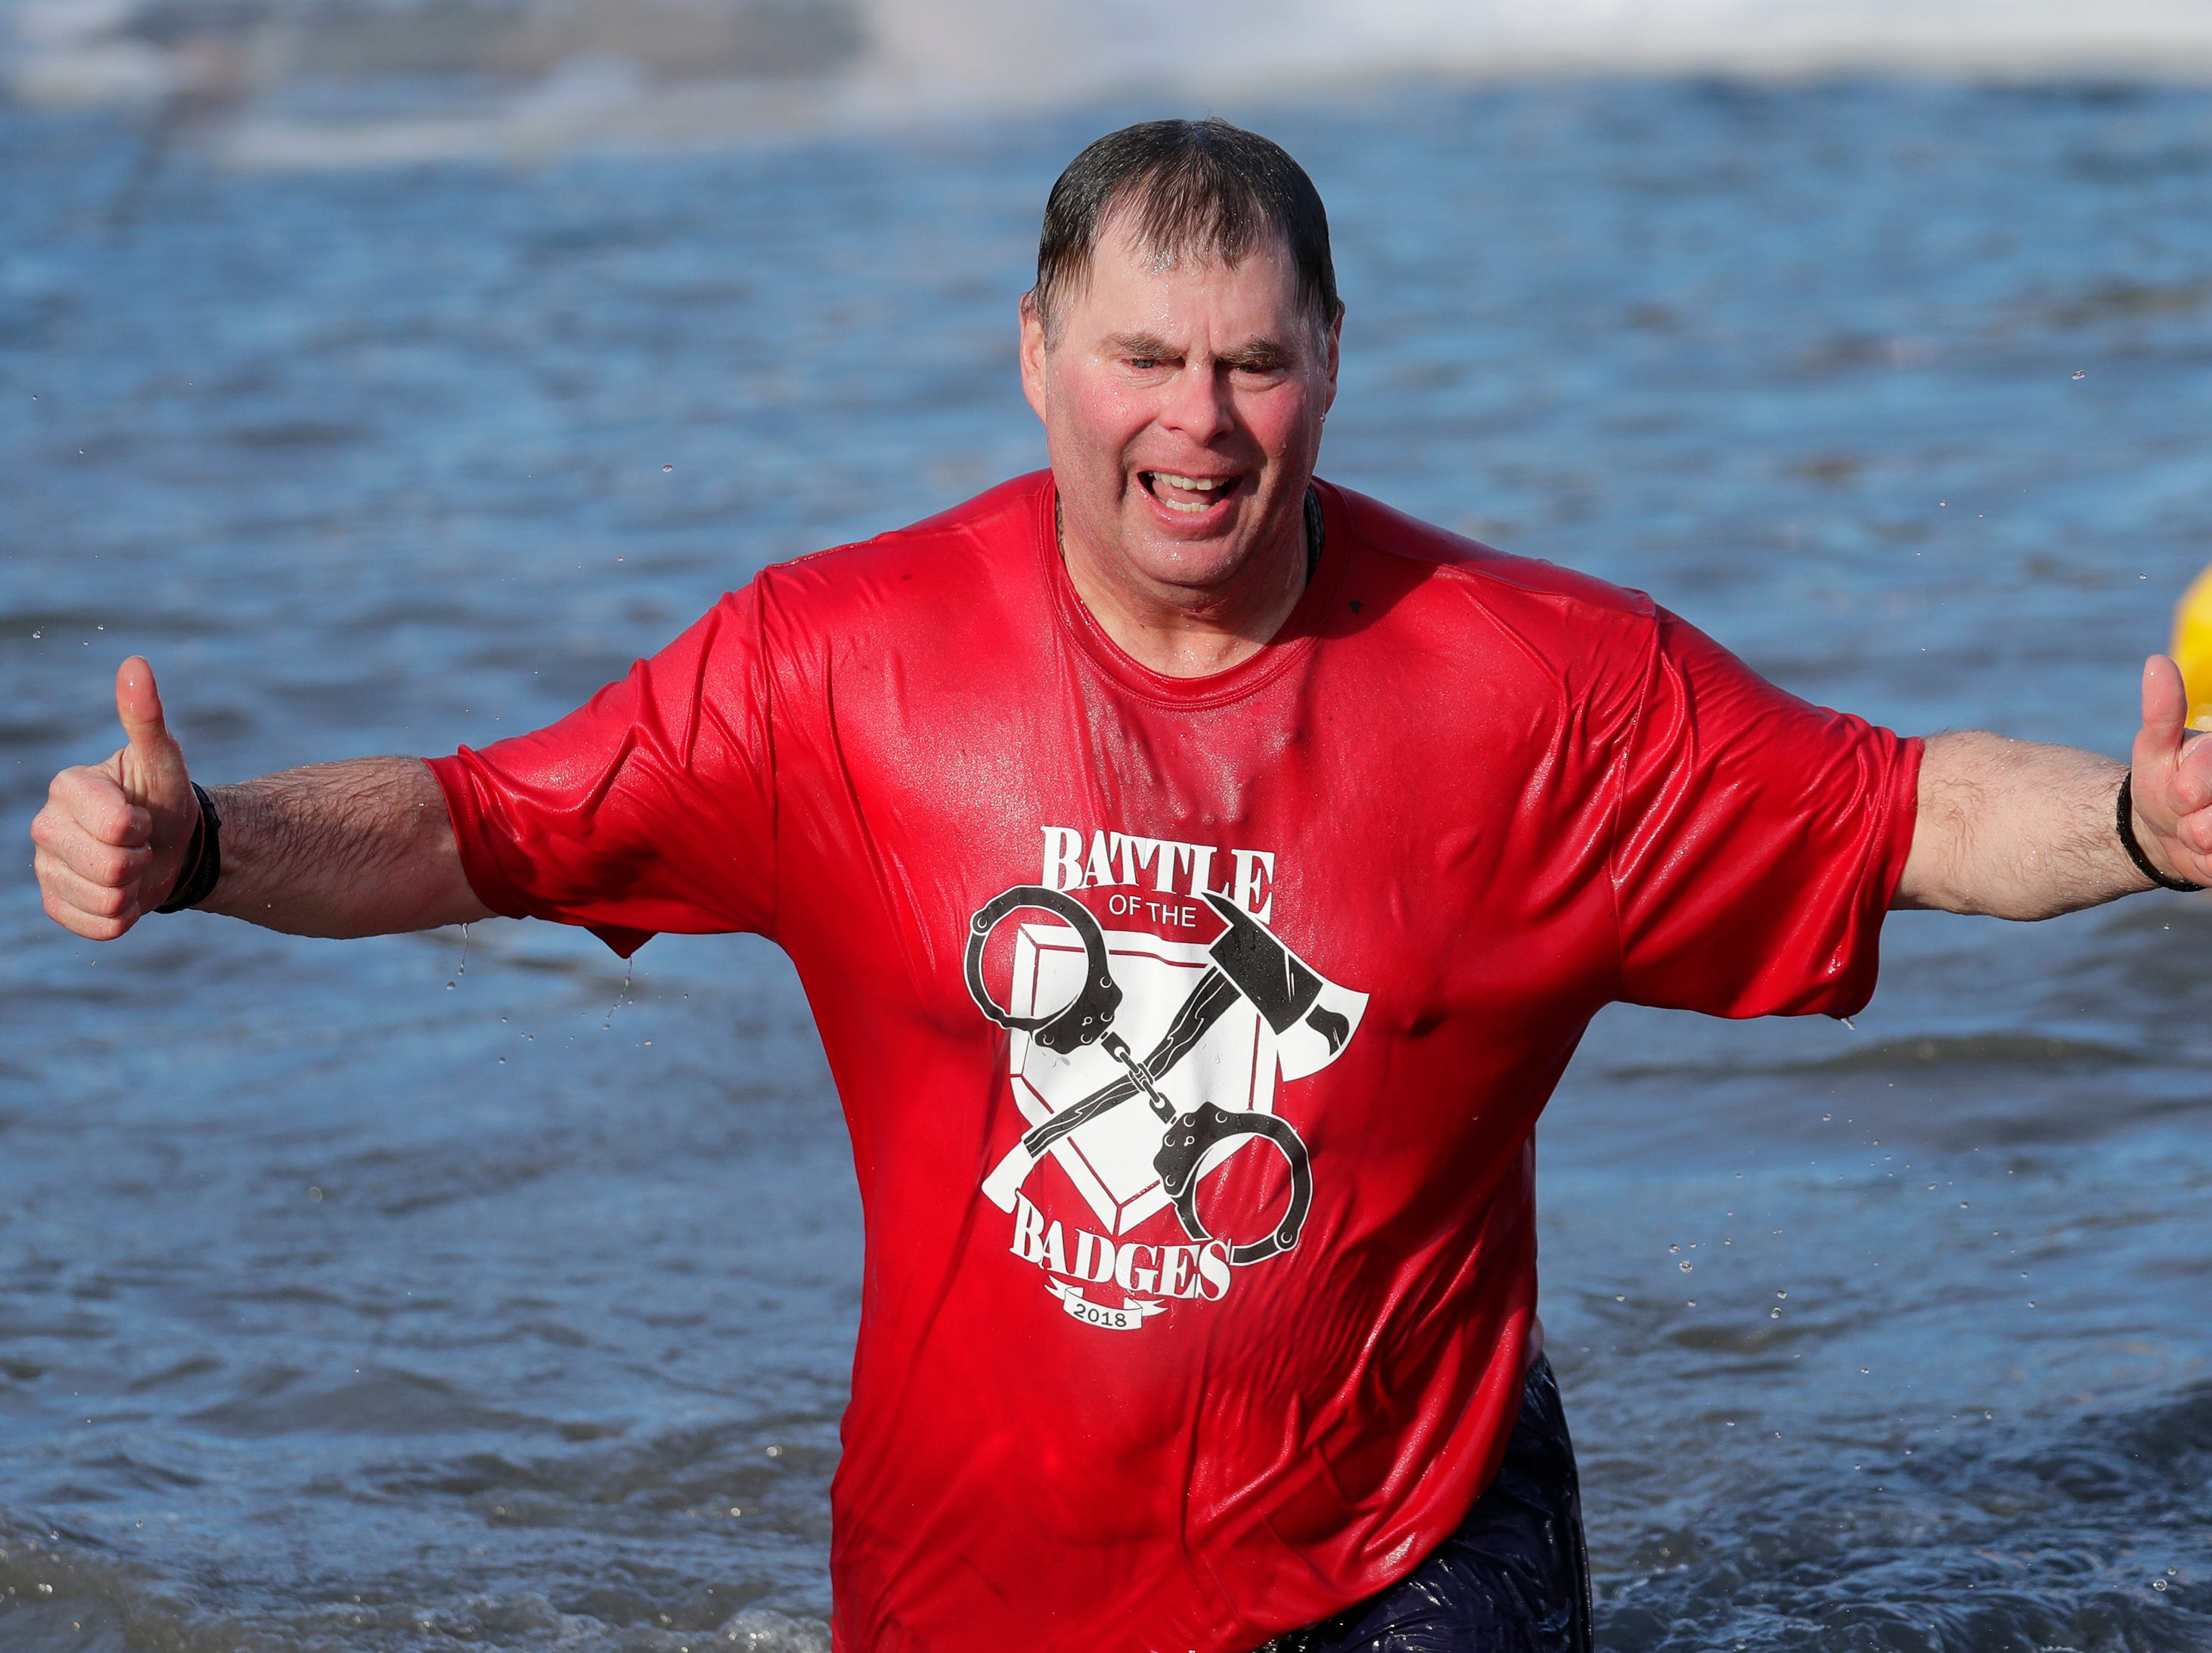 Lt. Pete Jungers of the Waupaca Fire Department gives a thumbs up during the Polar Bear Plunge Tuesday, January 1, 2019, at Becker Marine on Lime Kiln Lake in Waupaca, Wis. 